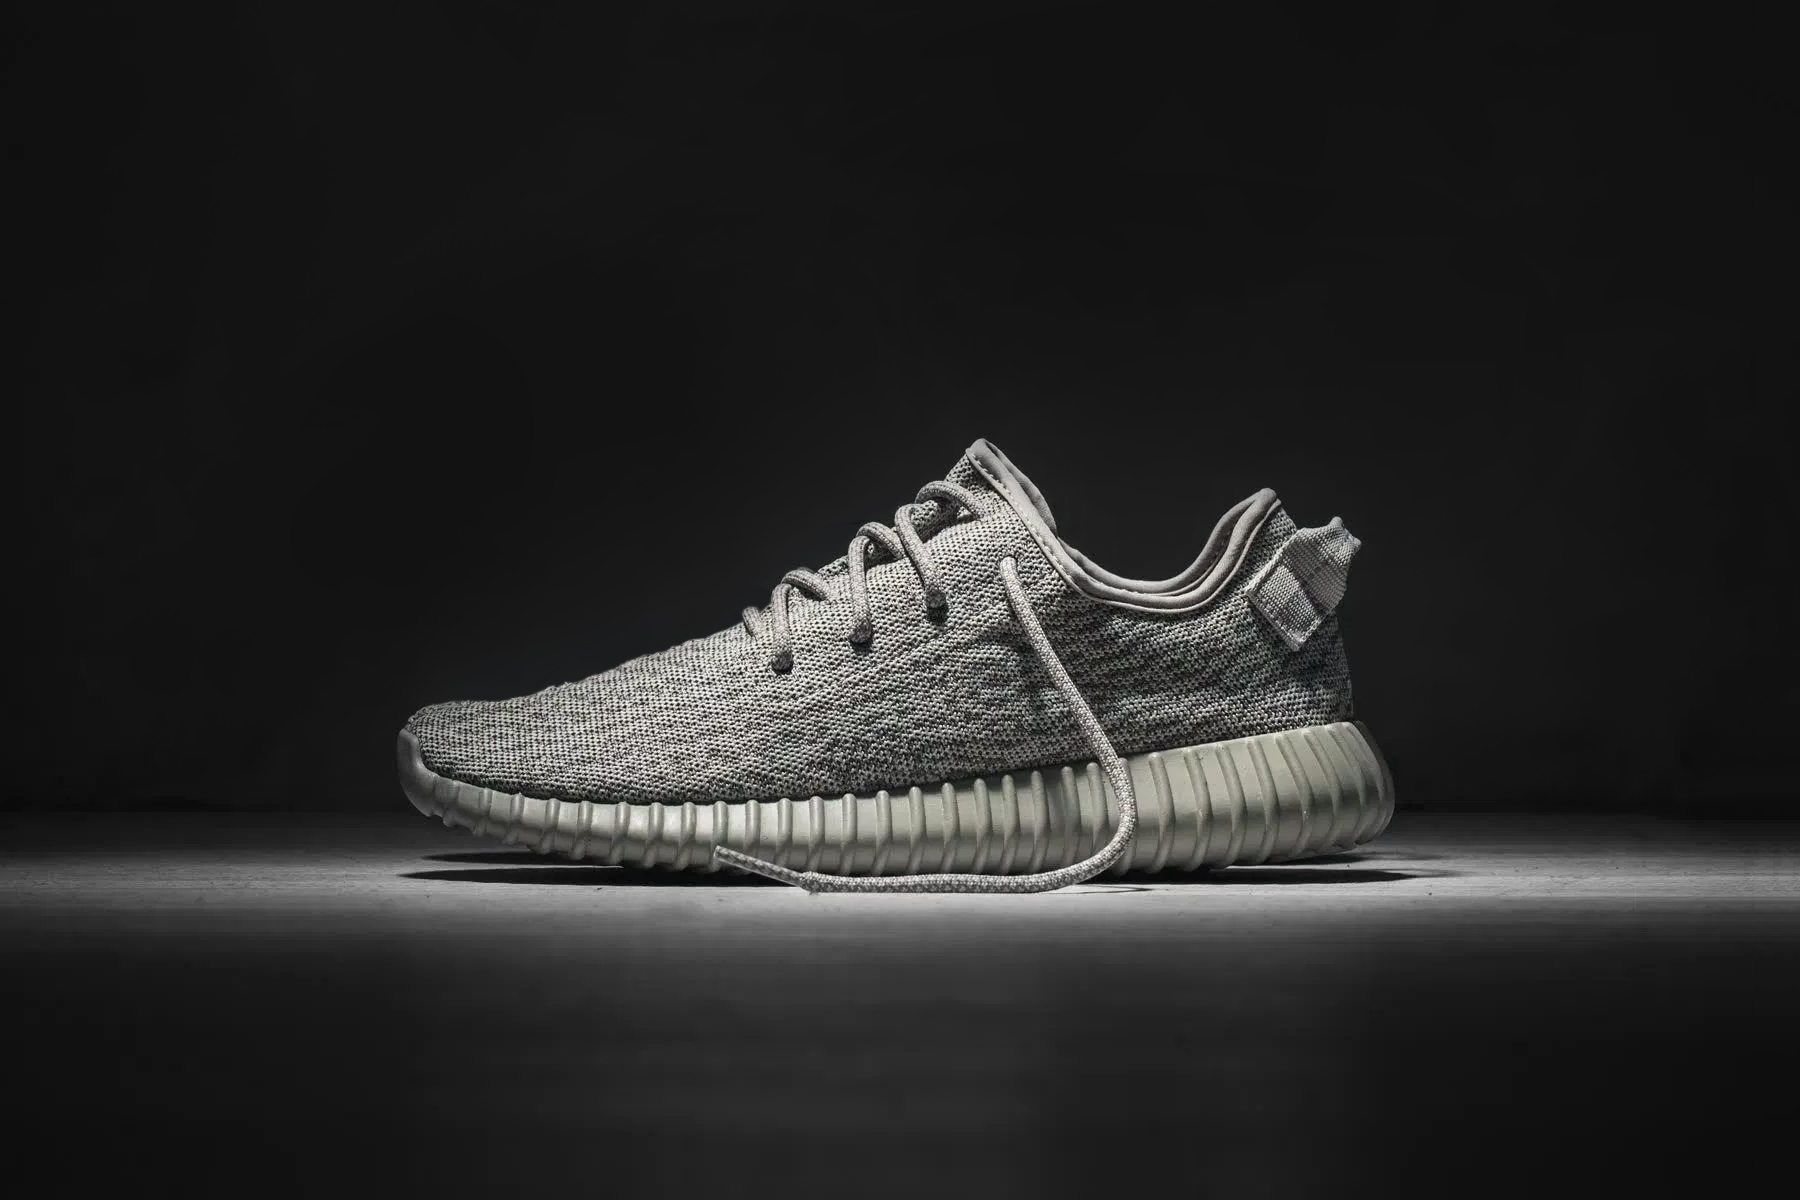 Shop Adidas yeezy 350 boost white release date Buy Price size 6.5